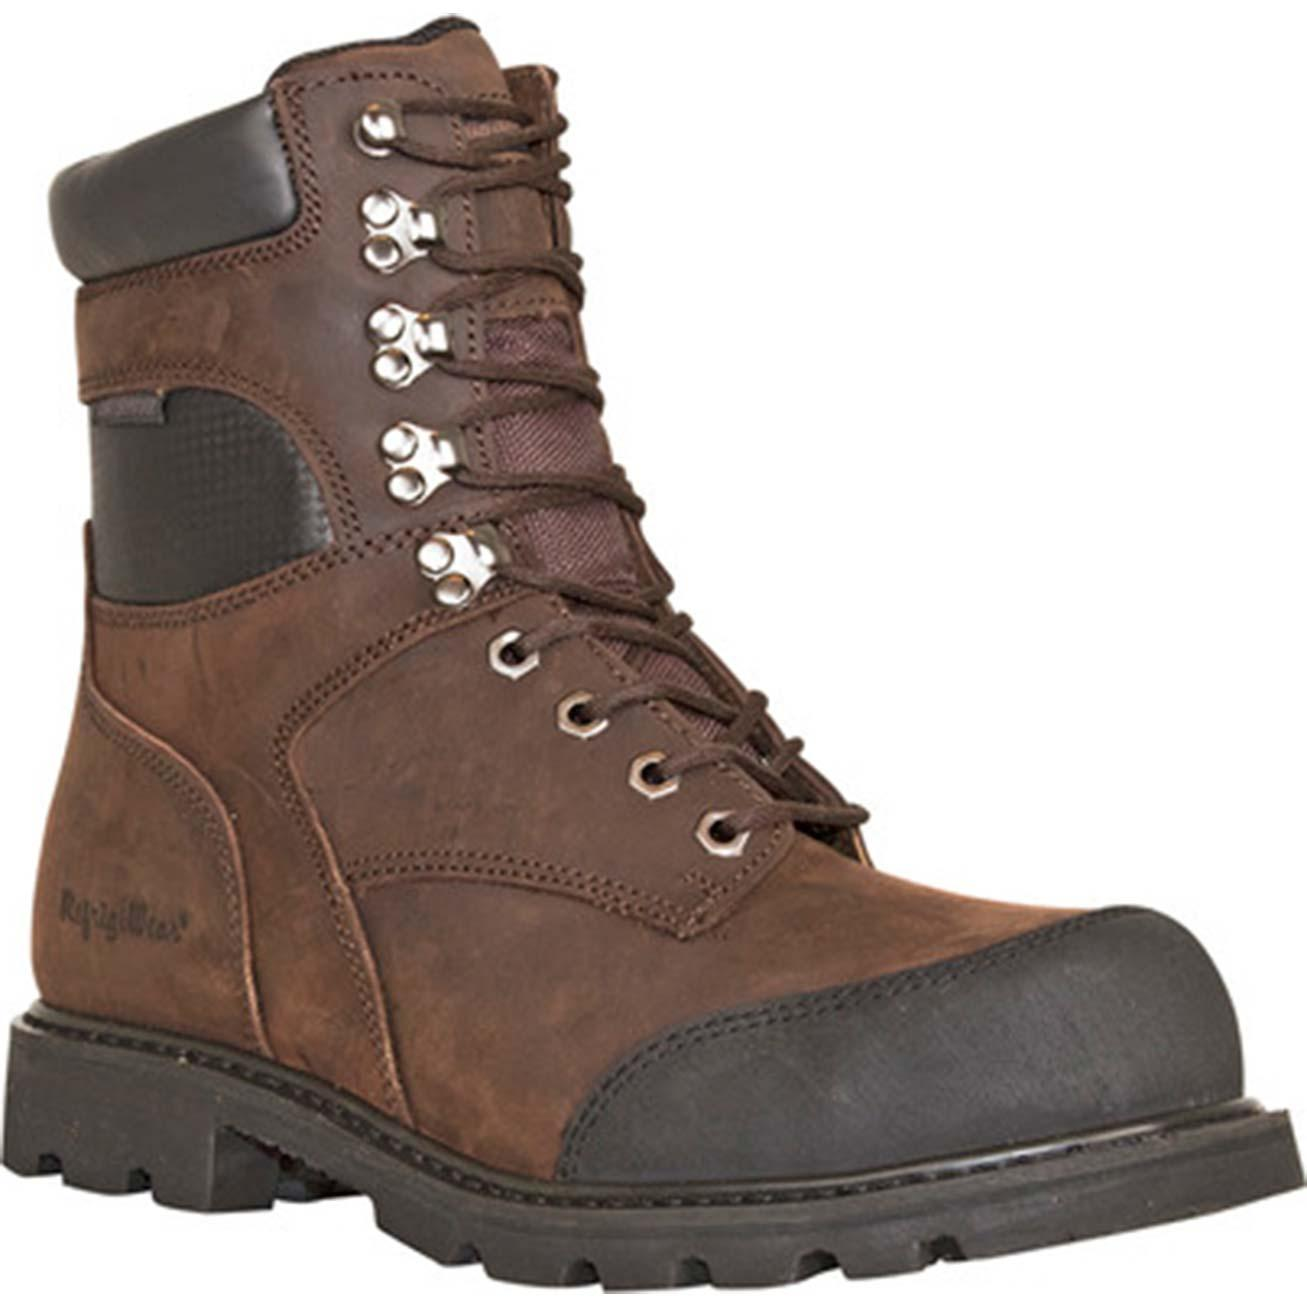 df25b1786c9 RefrigiWear Platinum Leather Composite Toe CSA-Approved Puncture-Resistant  Waterproof 1000g Insulated Work Boot